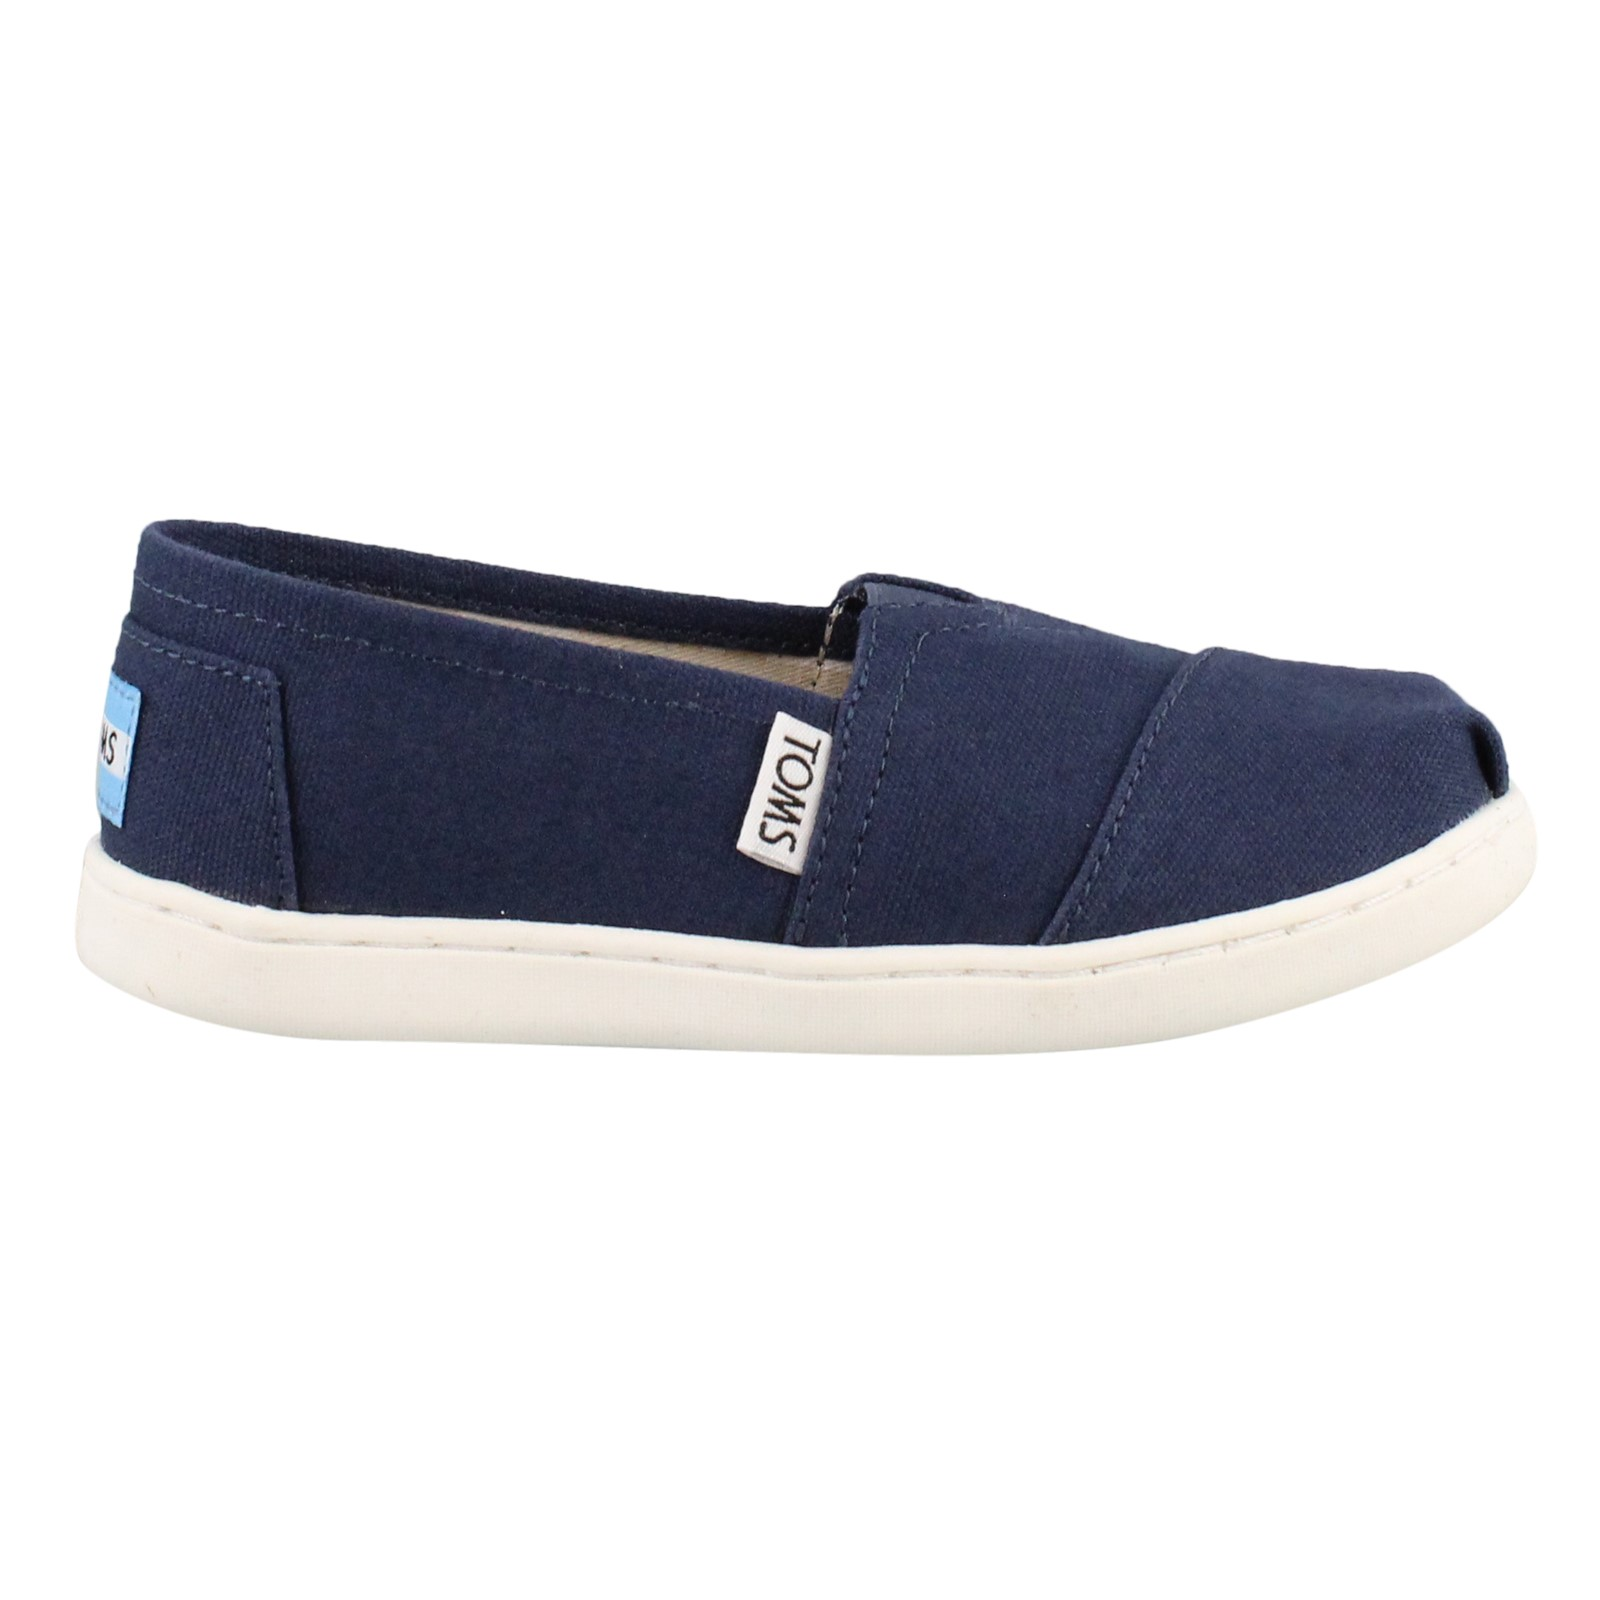 Girl's Toms, Alpargata Classic Slip on Shoes